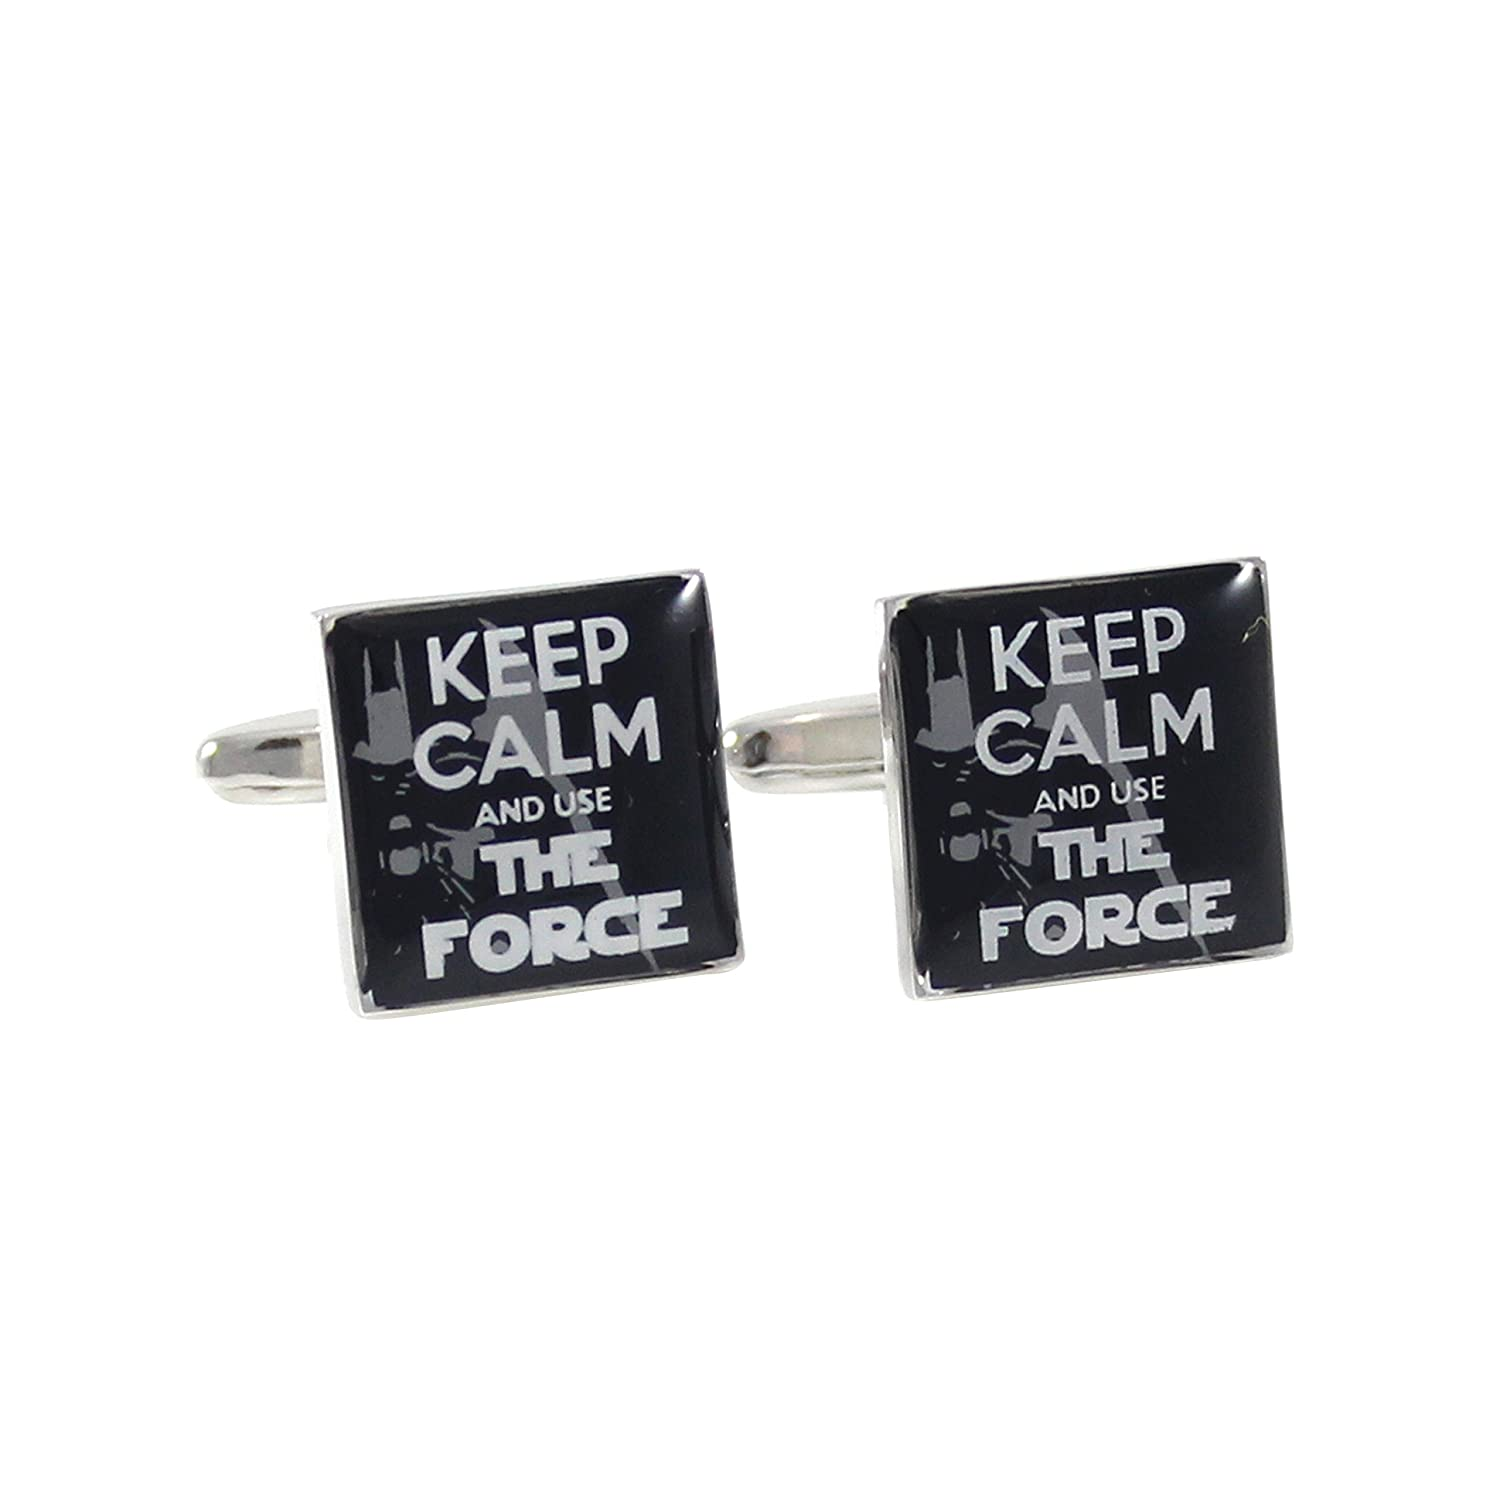 MENDEPOT Square Darth Vader Background Keep Calm And Use The Force Cuff links With Gift Box